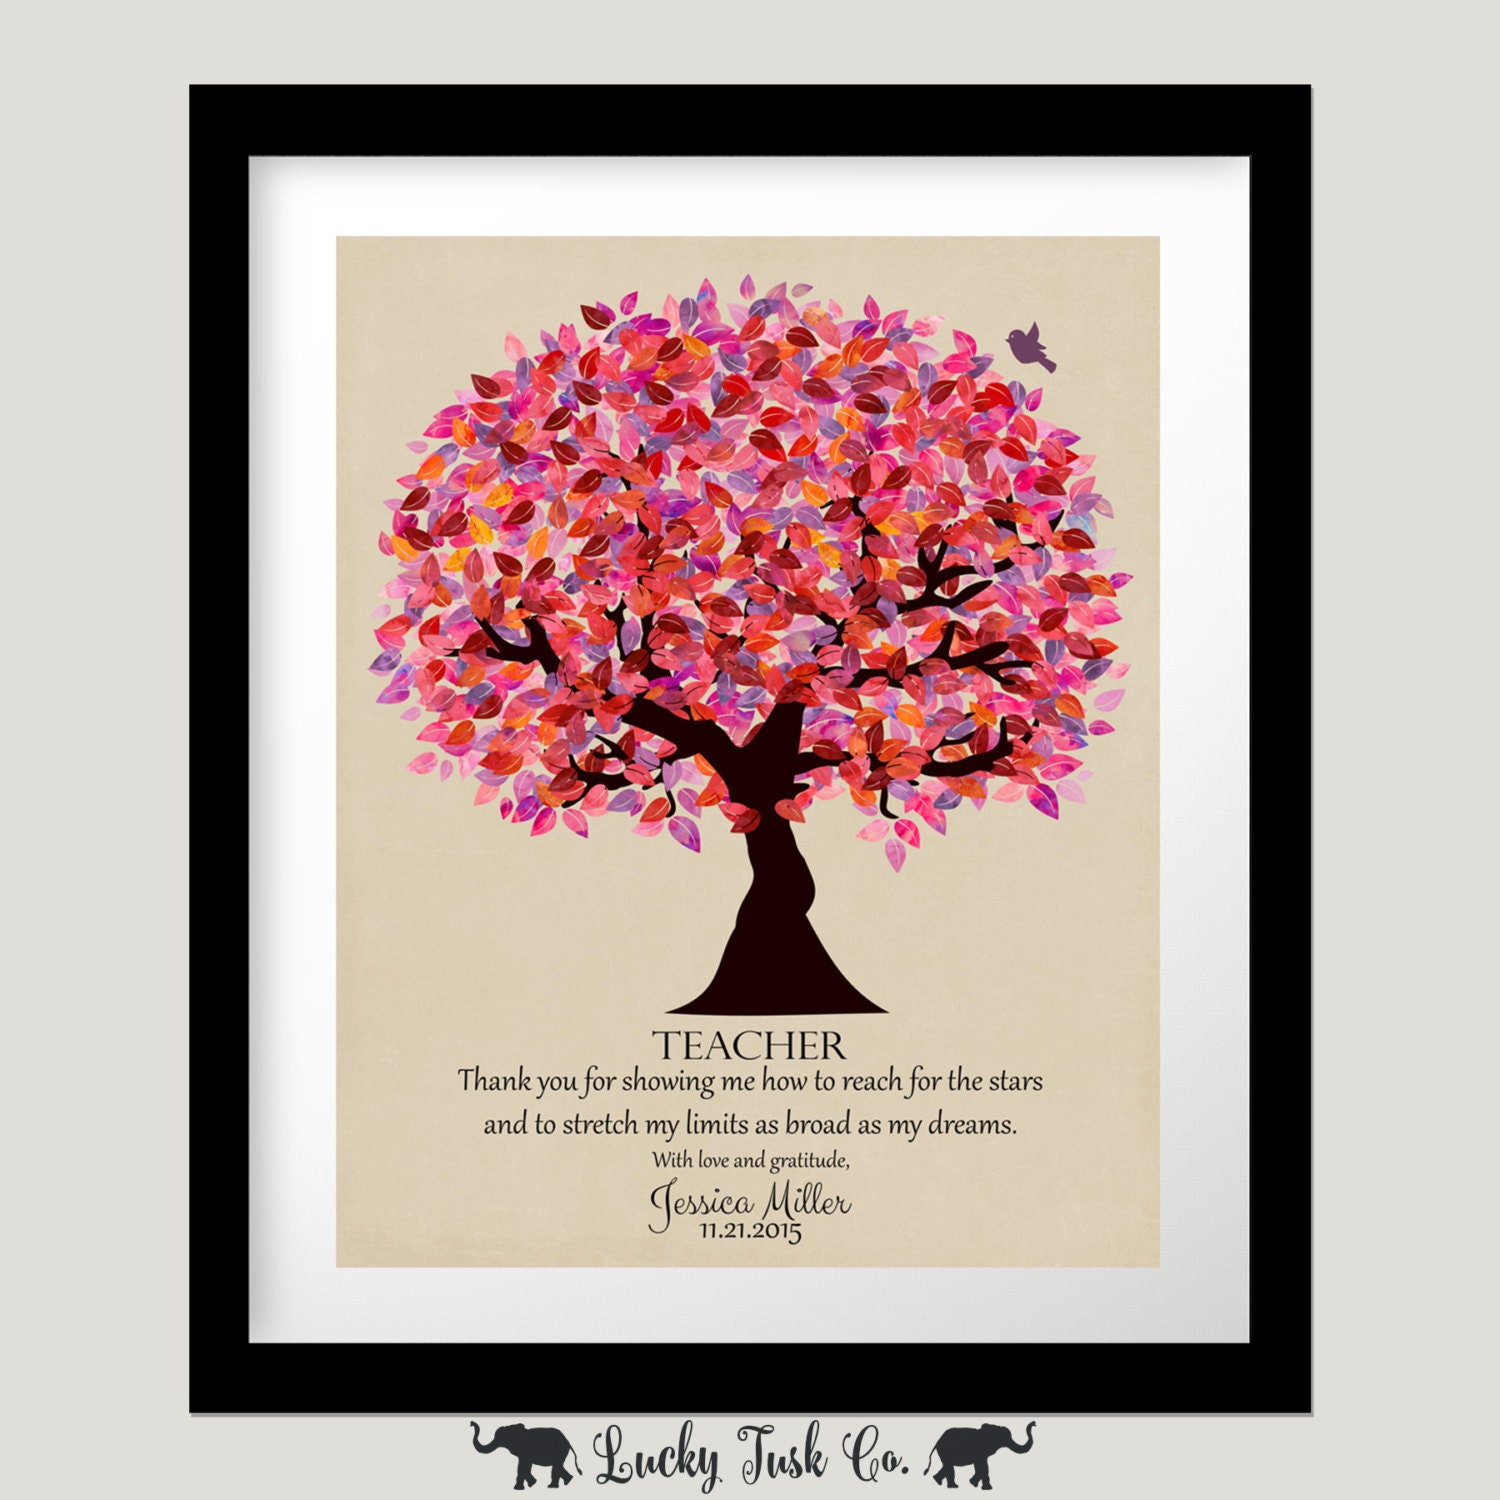 Personalized Gift For Teacher Mentor End Of School Year